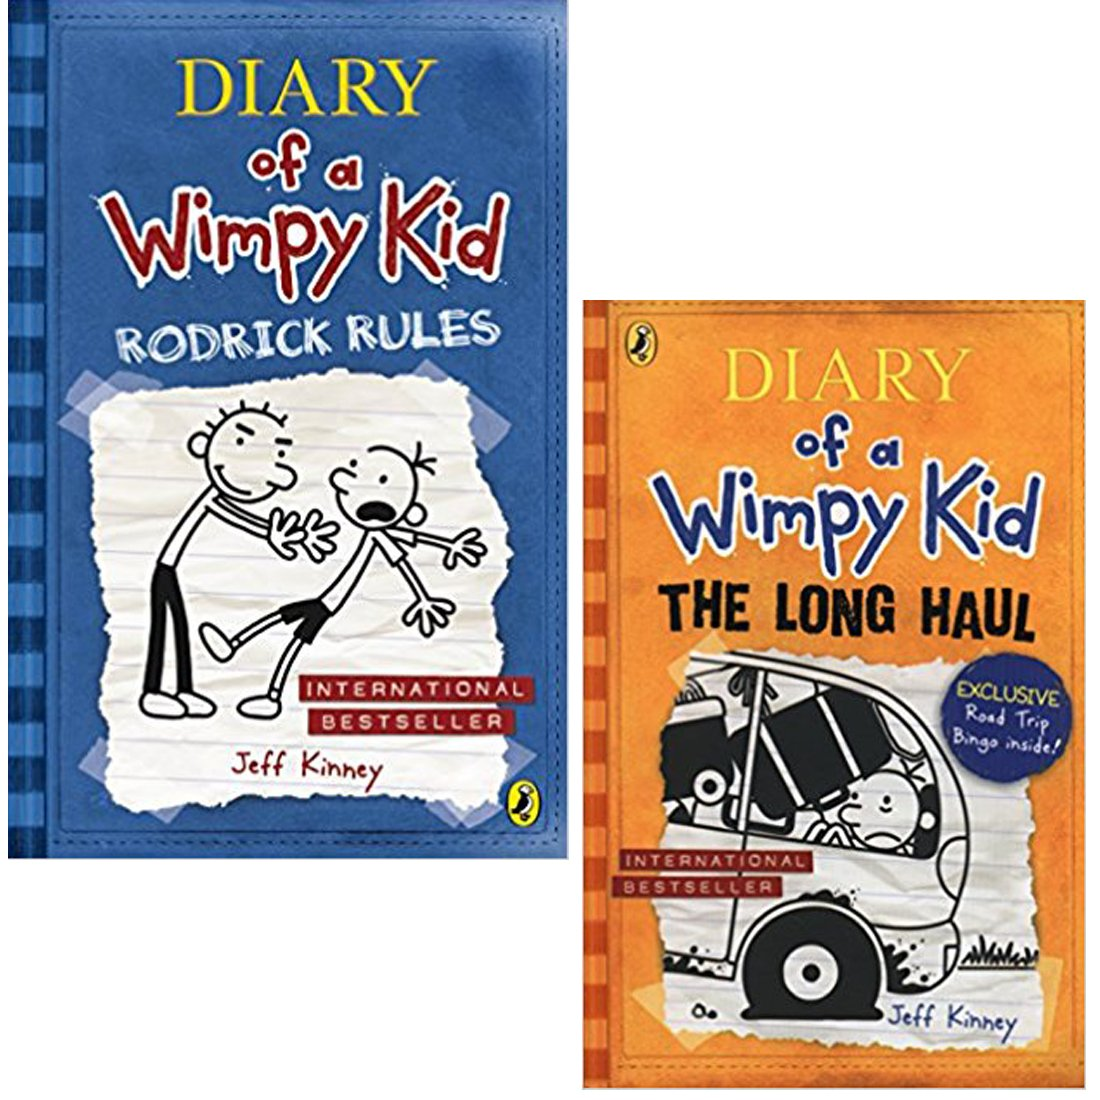 Buy Novel Combo Set Diary Of A Wimpy Kid Rodrick Rules The Long Haul Diary Of A Wimpy Kid Book 9 By Jeff Kinney Author Paperback Online At Low Prices In India